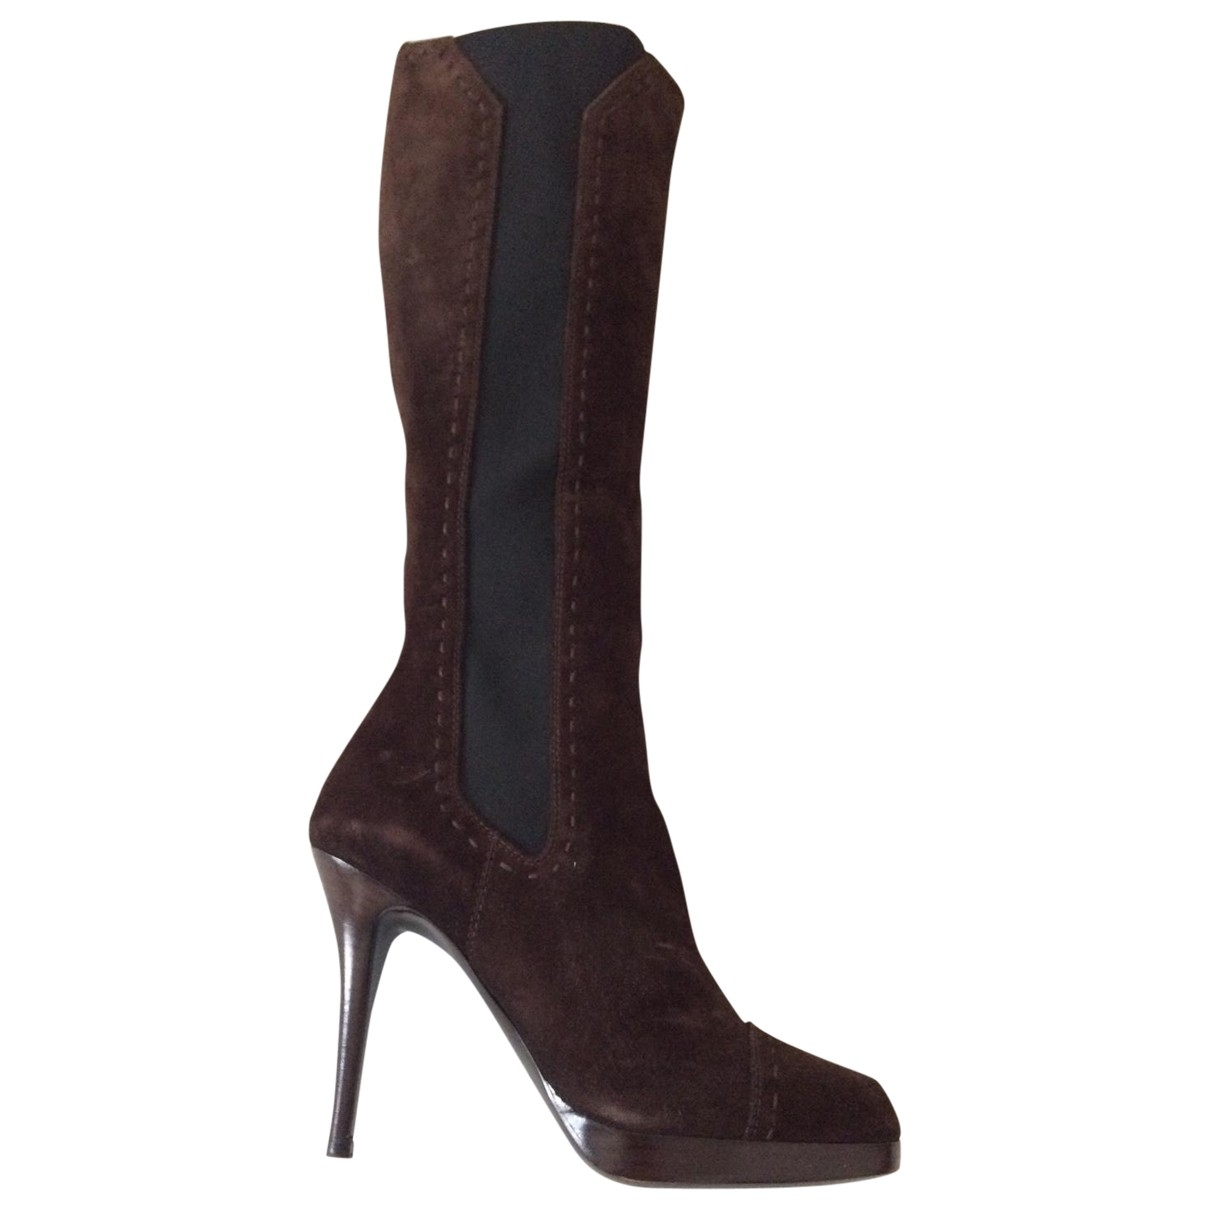 Yves Saint Laurent \N Brown Suede Boots for Women 37 EU